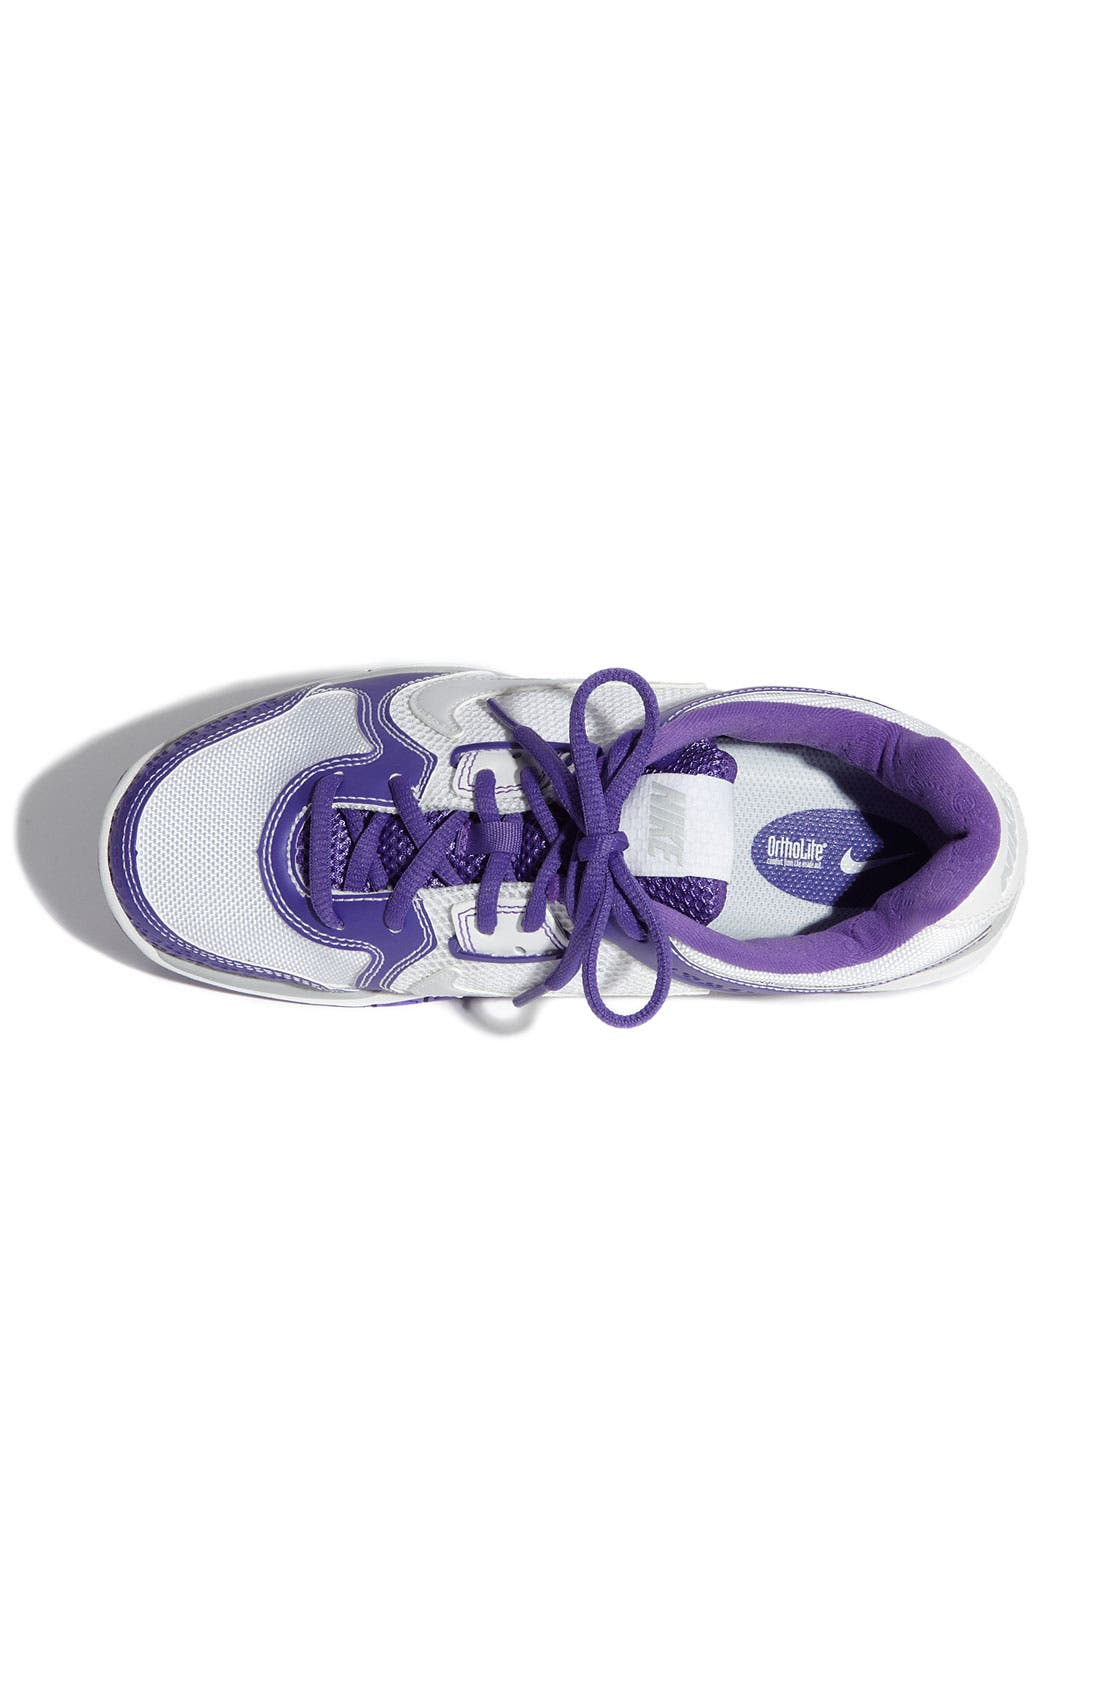 Alternate Image 3  - Nike 'Air Max Mirabella 3' Tennis Shoe (Women)